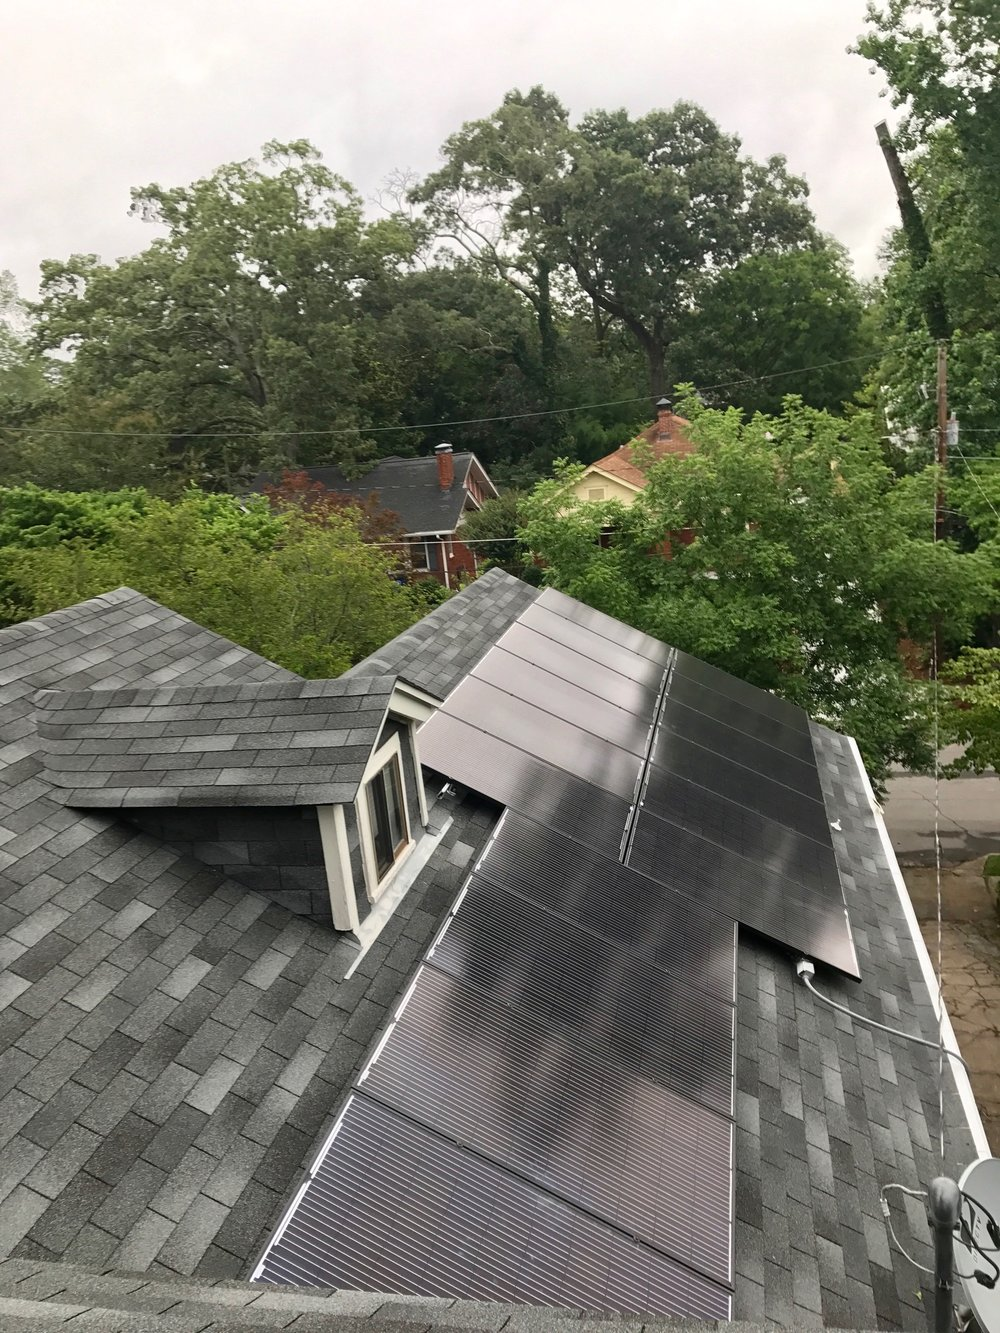 Residential Solar Array Roof Installation